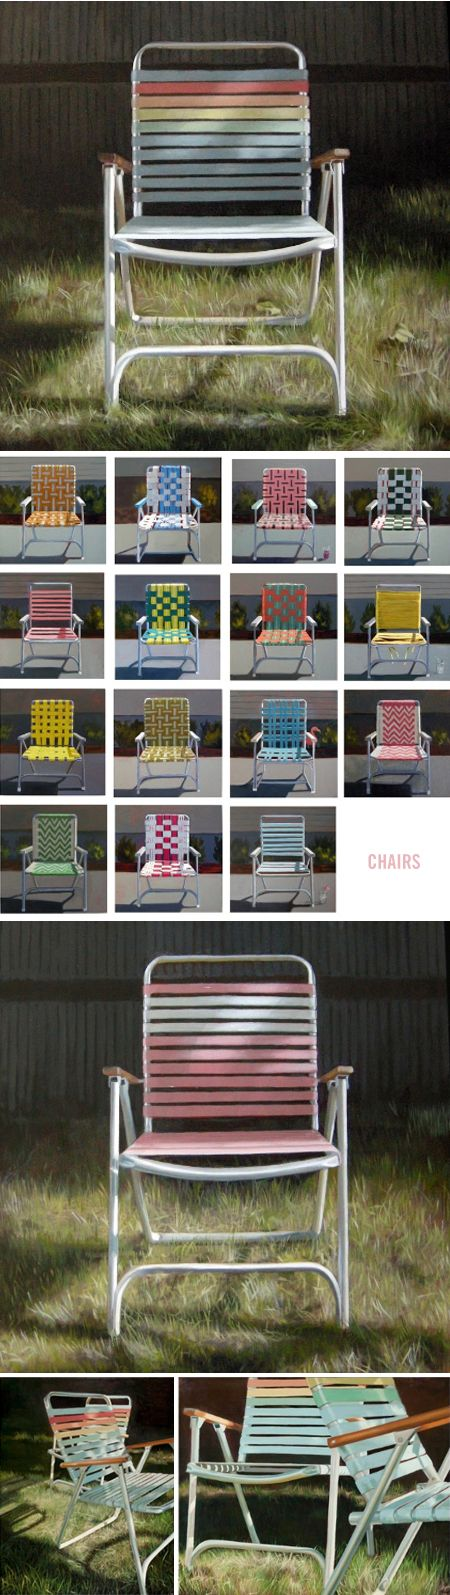 """chairs"" - oil paintings by cindy rizza <3"